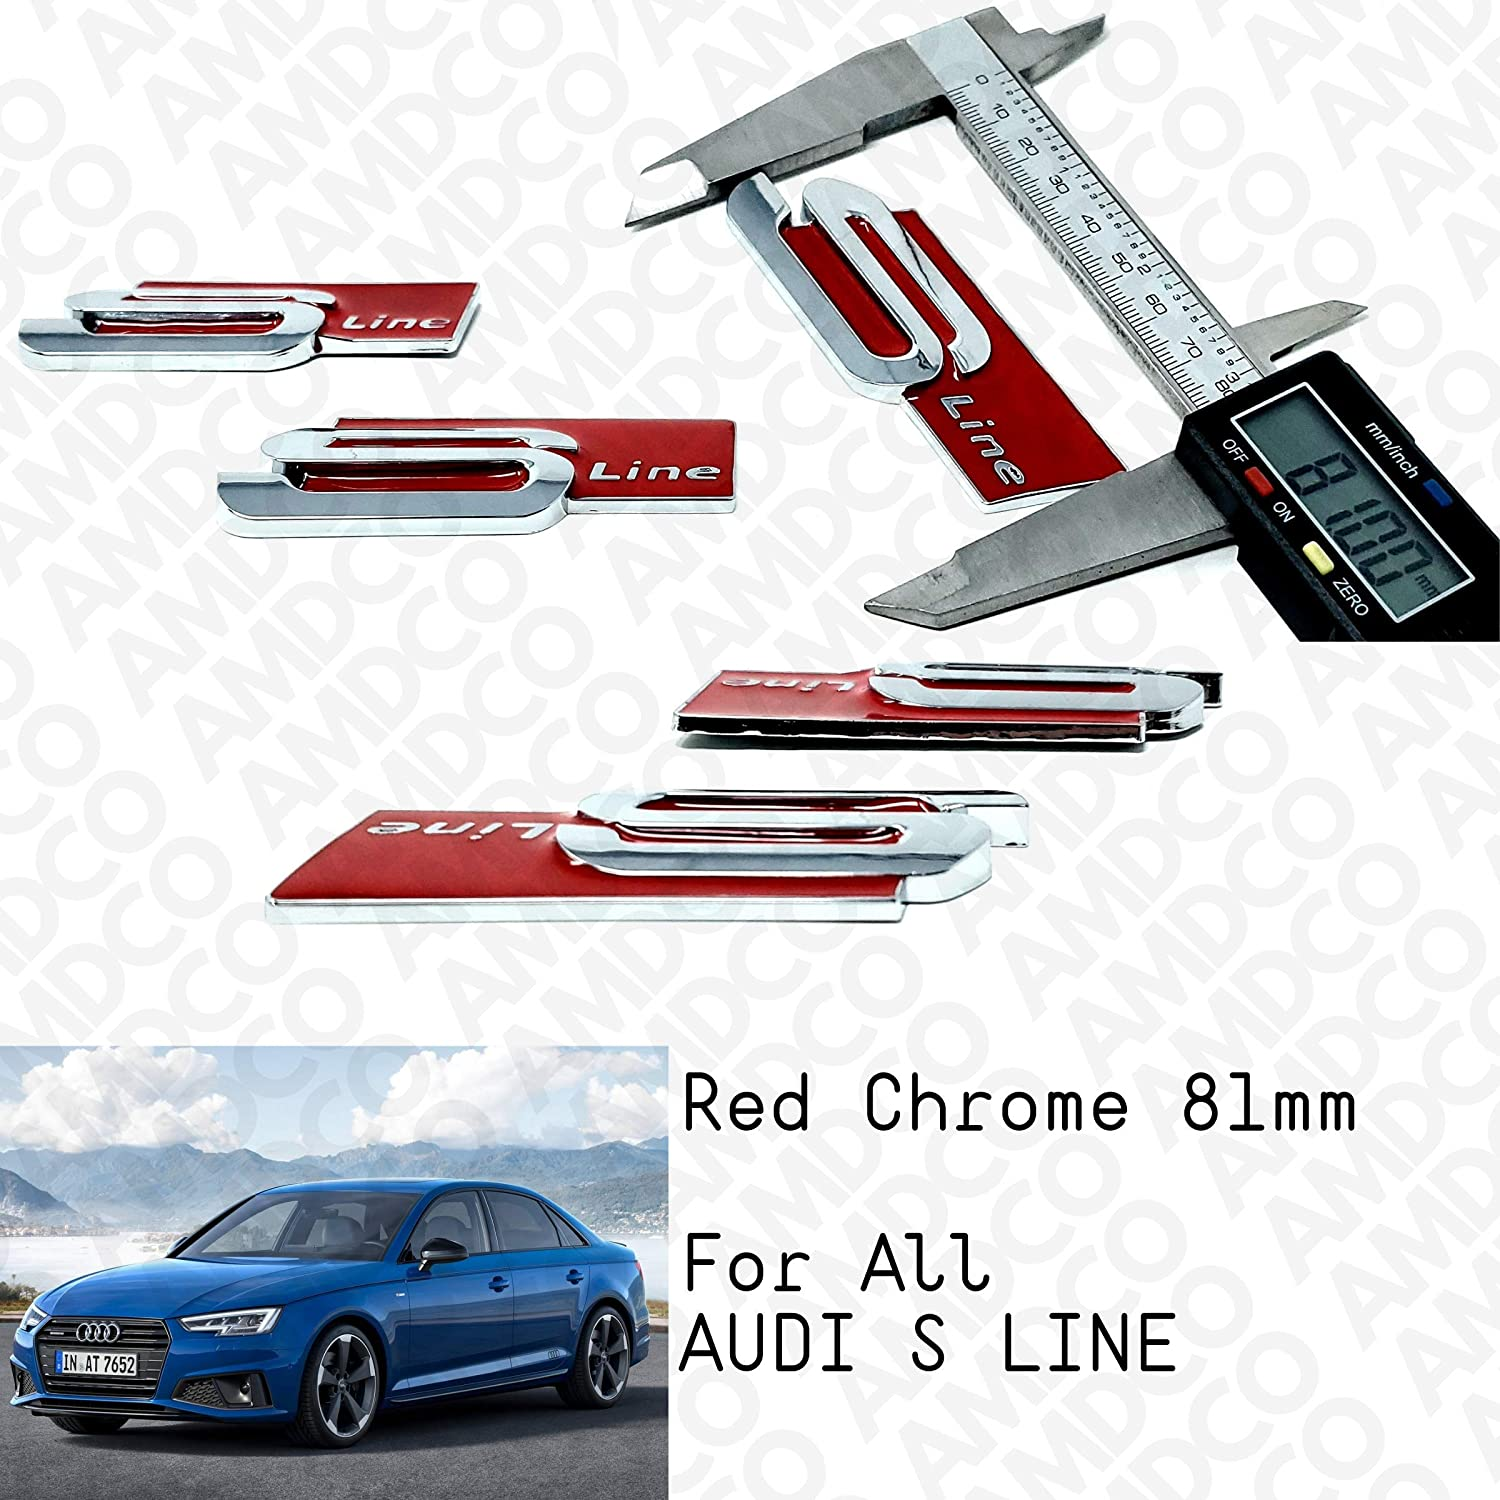 CHROME RED pack of 2 S LINE RED CHROME Emblem Badge Stickers Decals with Strong 3M Includes instructions MEASURE Before Purchase Fitment Top Quality fit For S RS LINE SIDE FENDER AMD